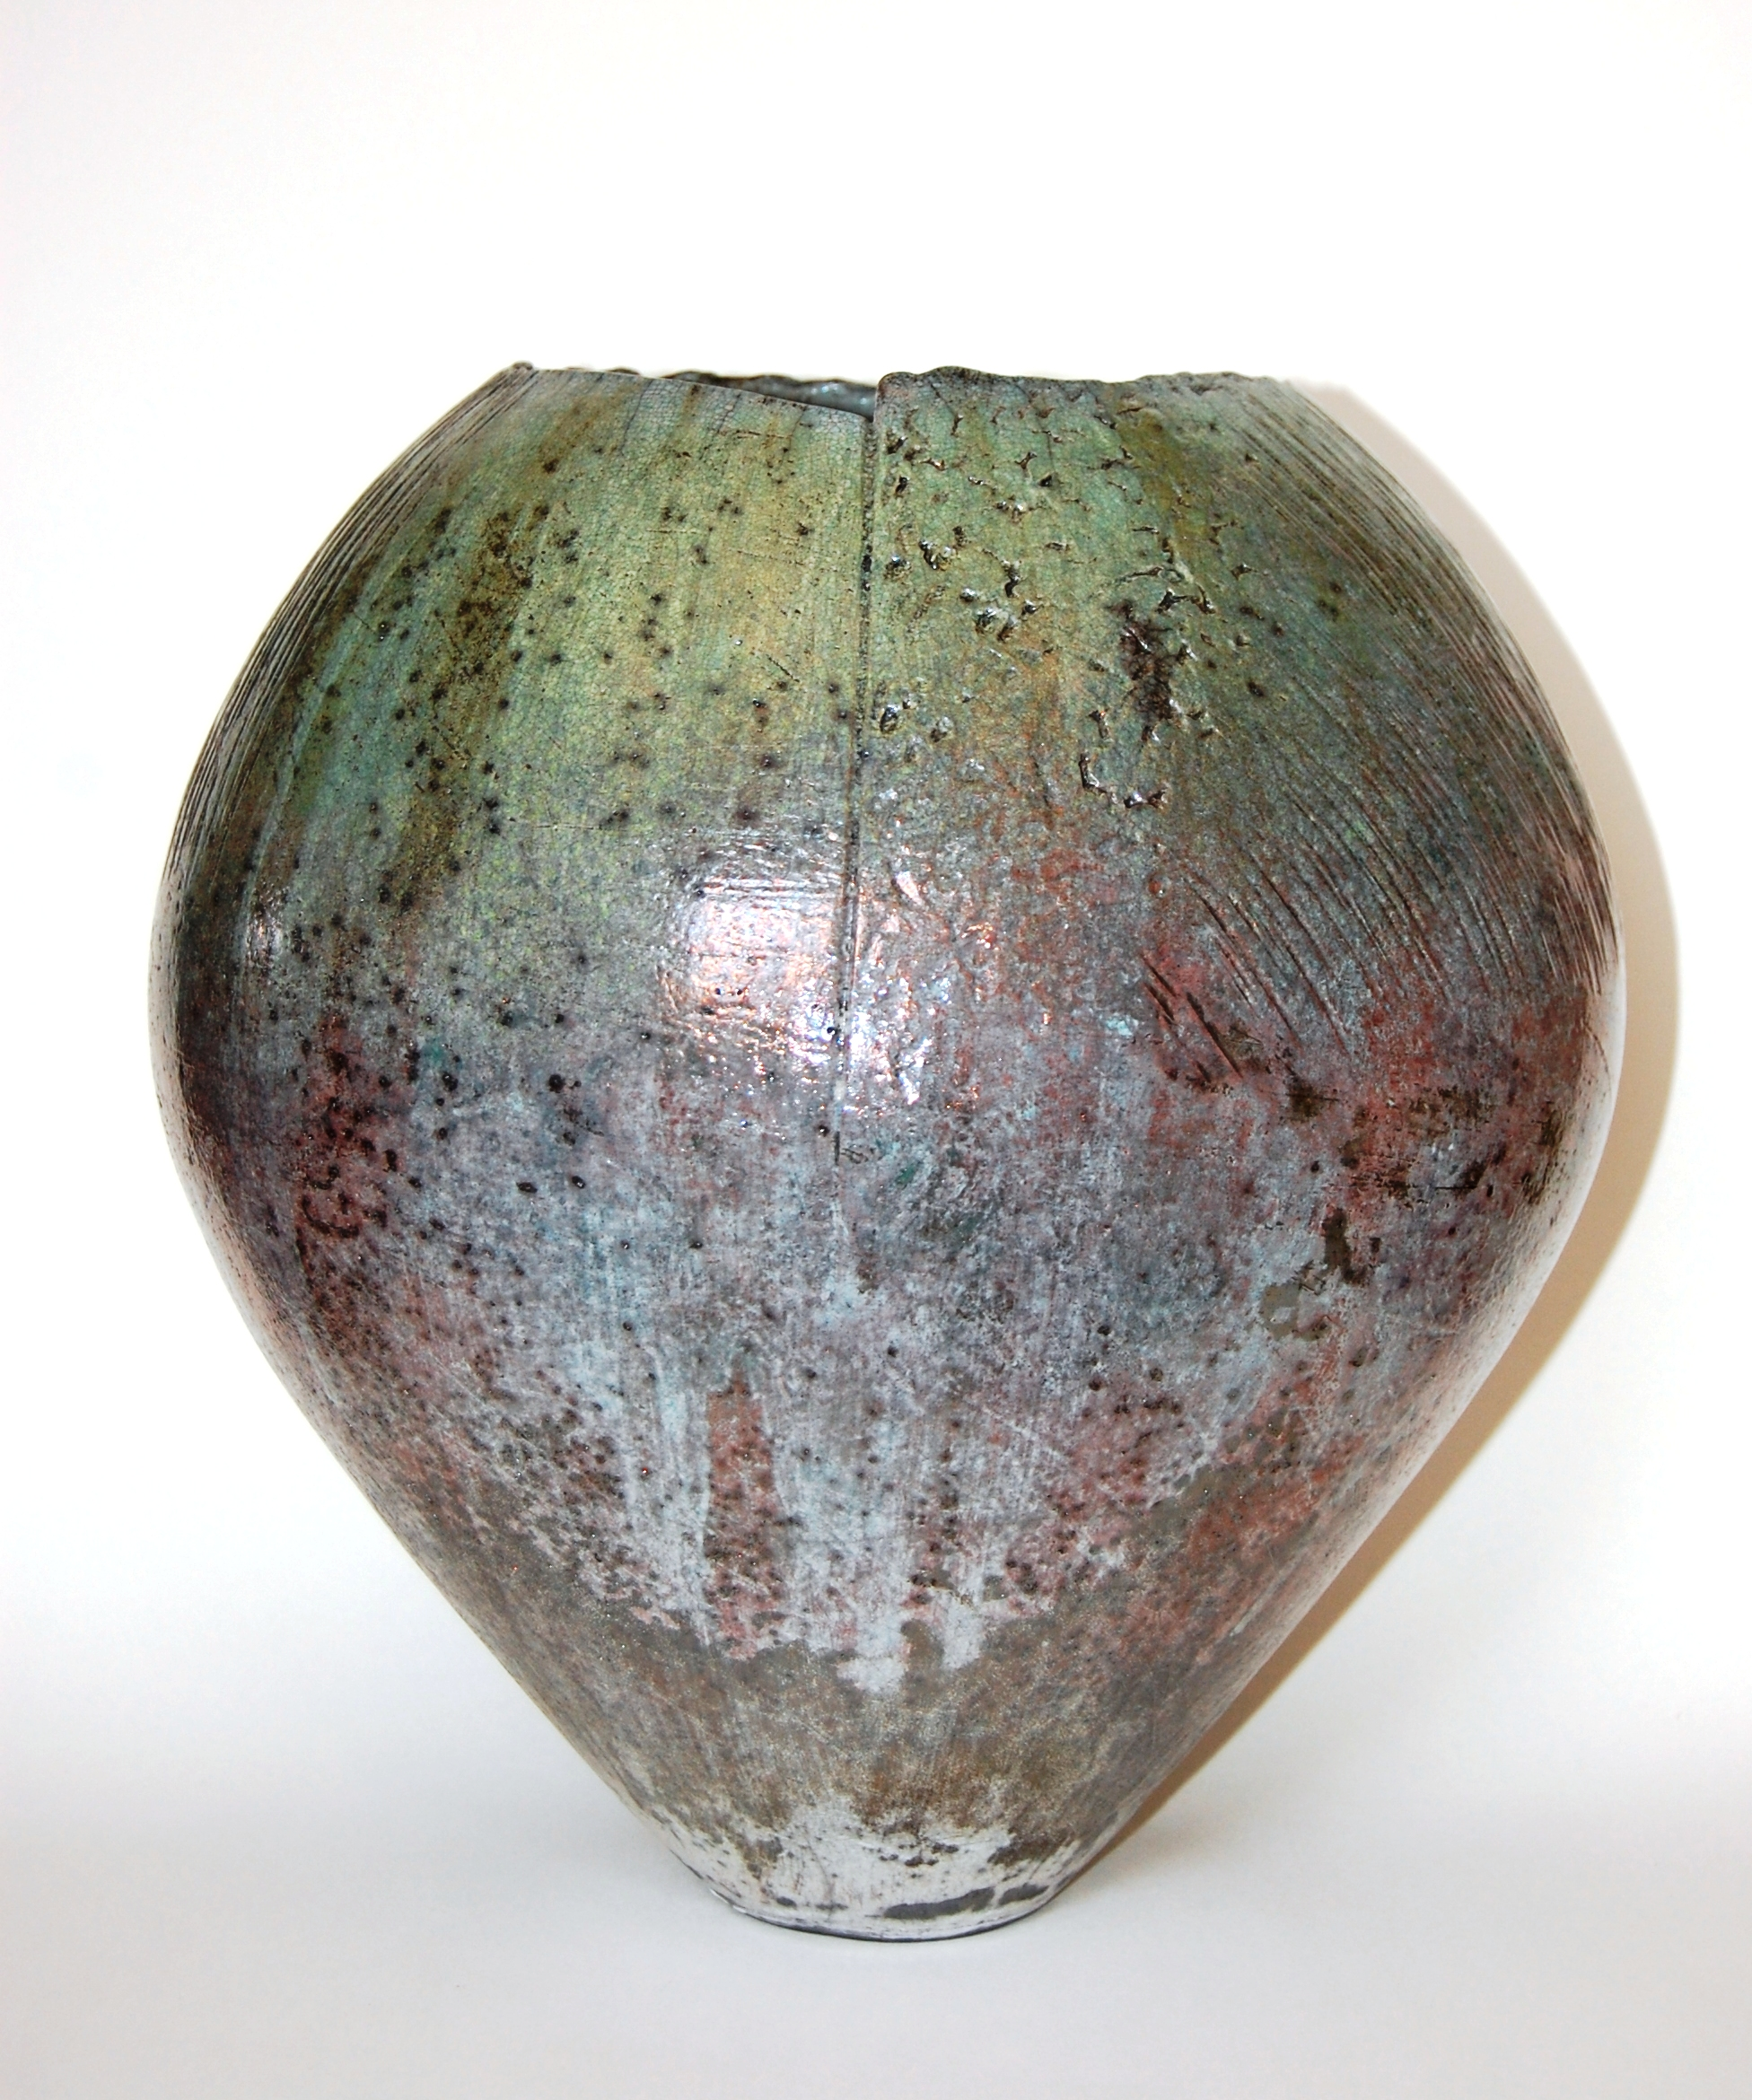 Green Rounded Vessel - £600.00